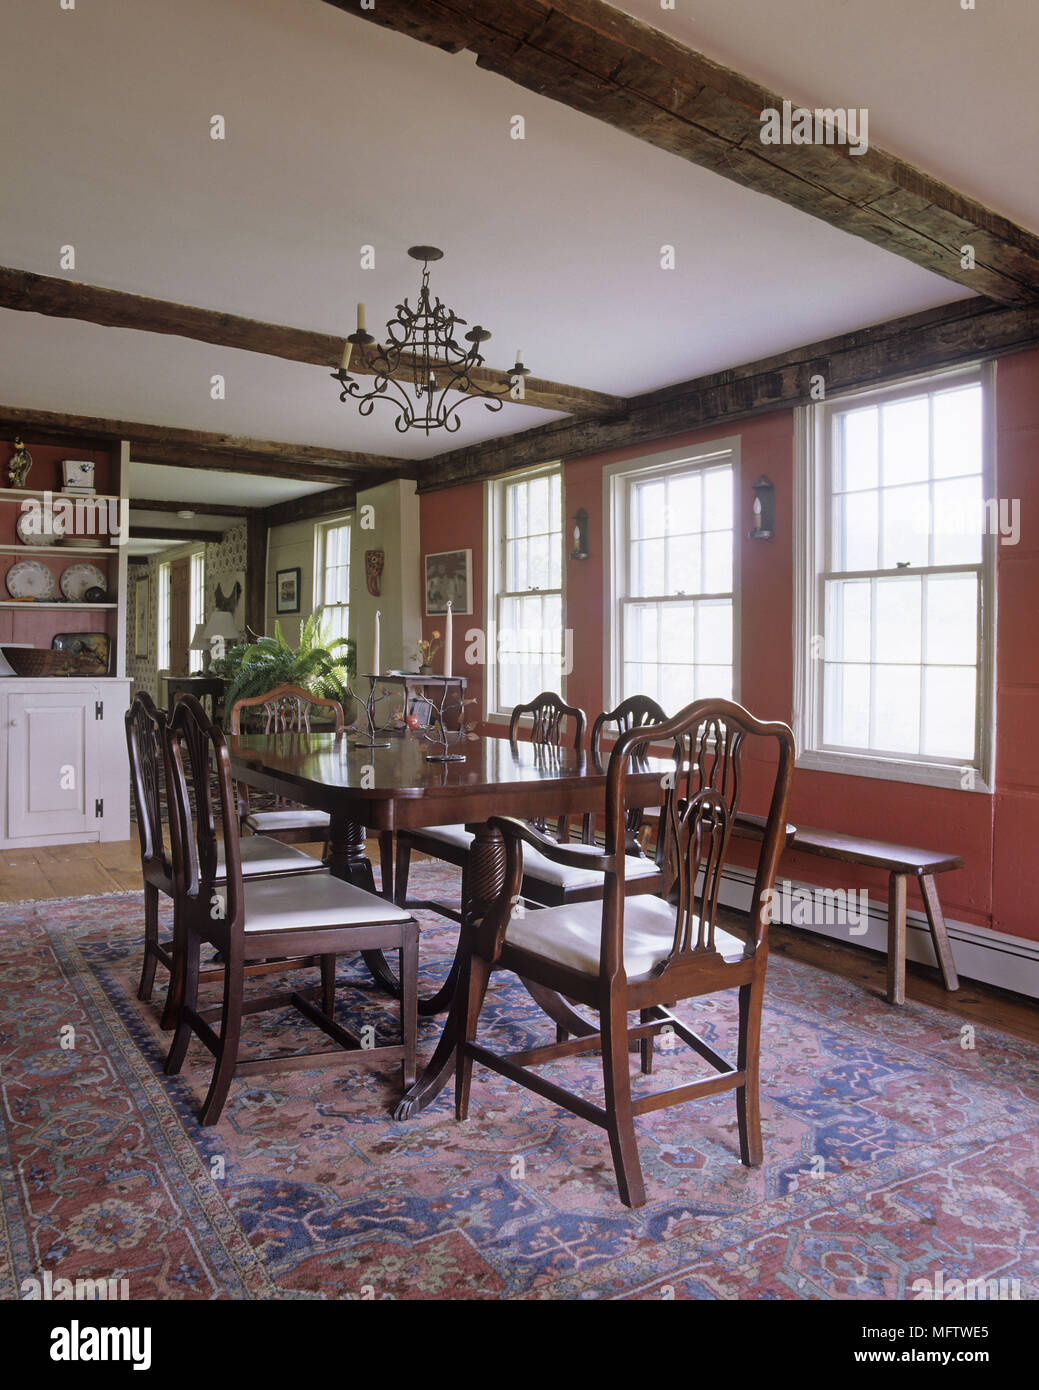 A Traditional Dining Room With Wooden Table And Chairs On Large Oriental Rug Metal Chandelier Hanging From Beam